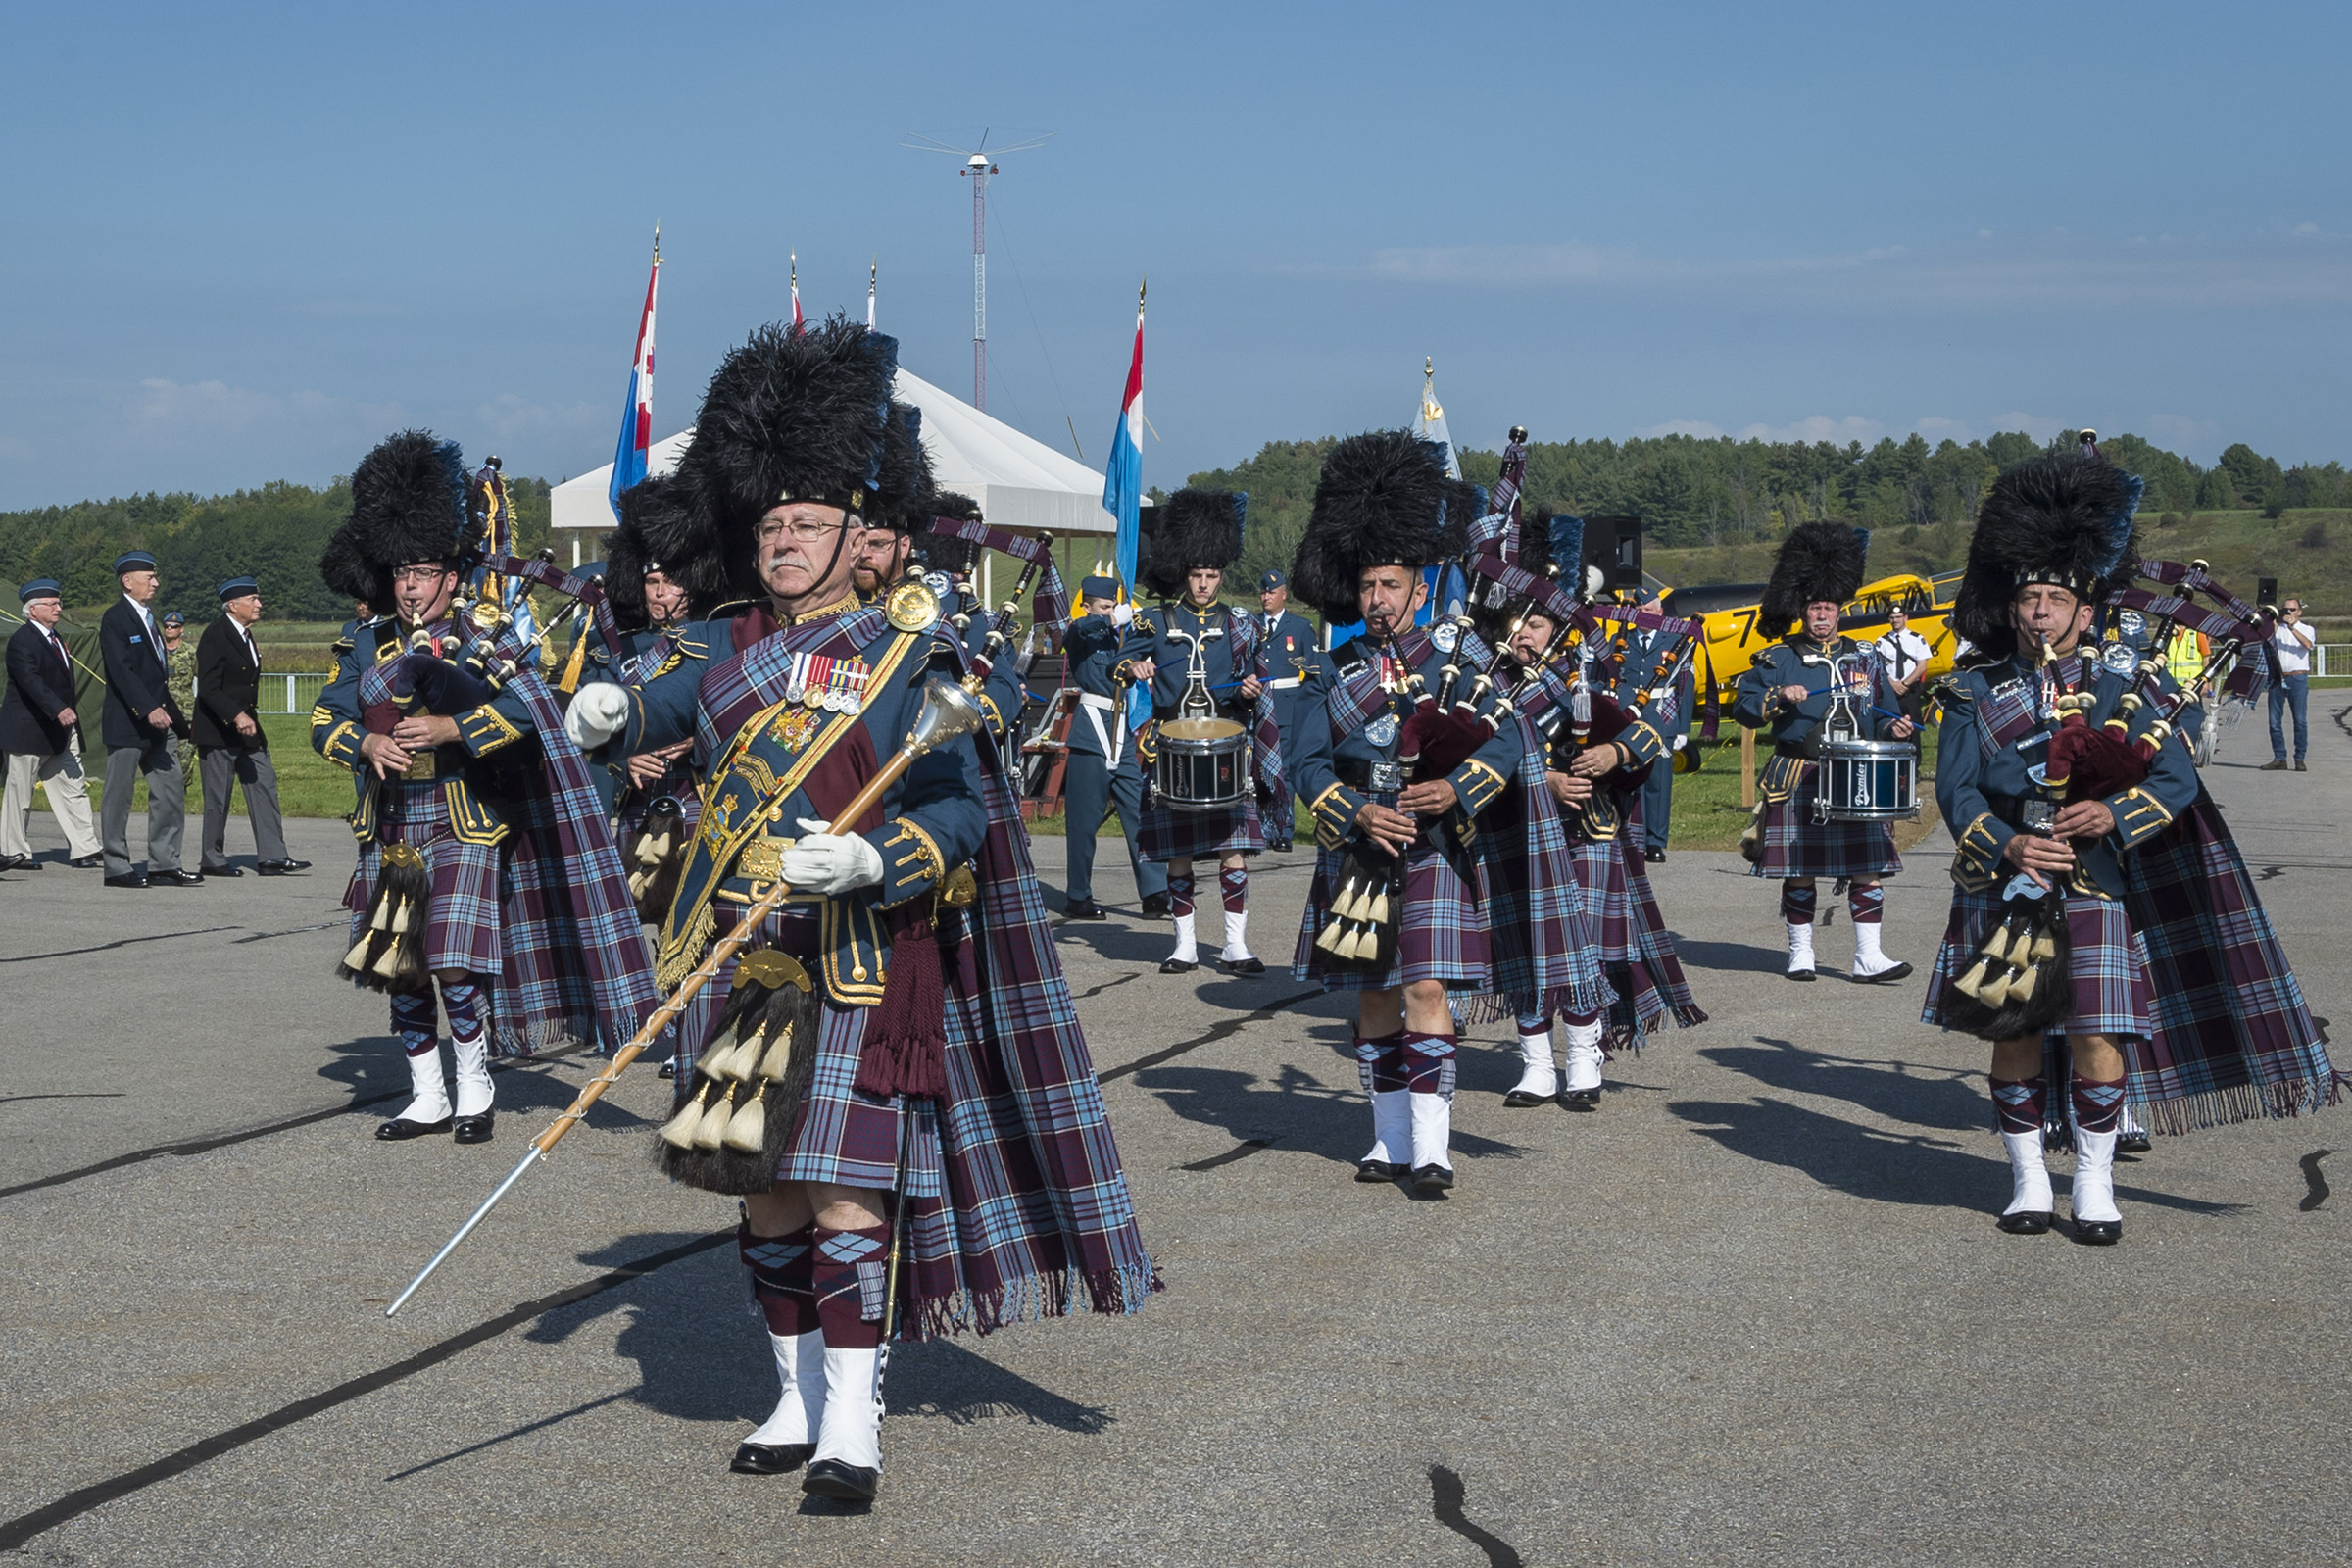 Military personnel playing bagpipes.